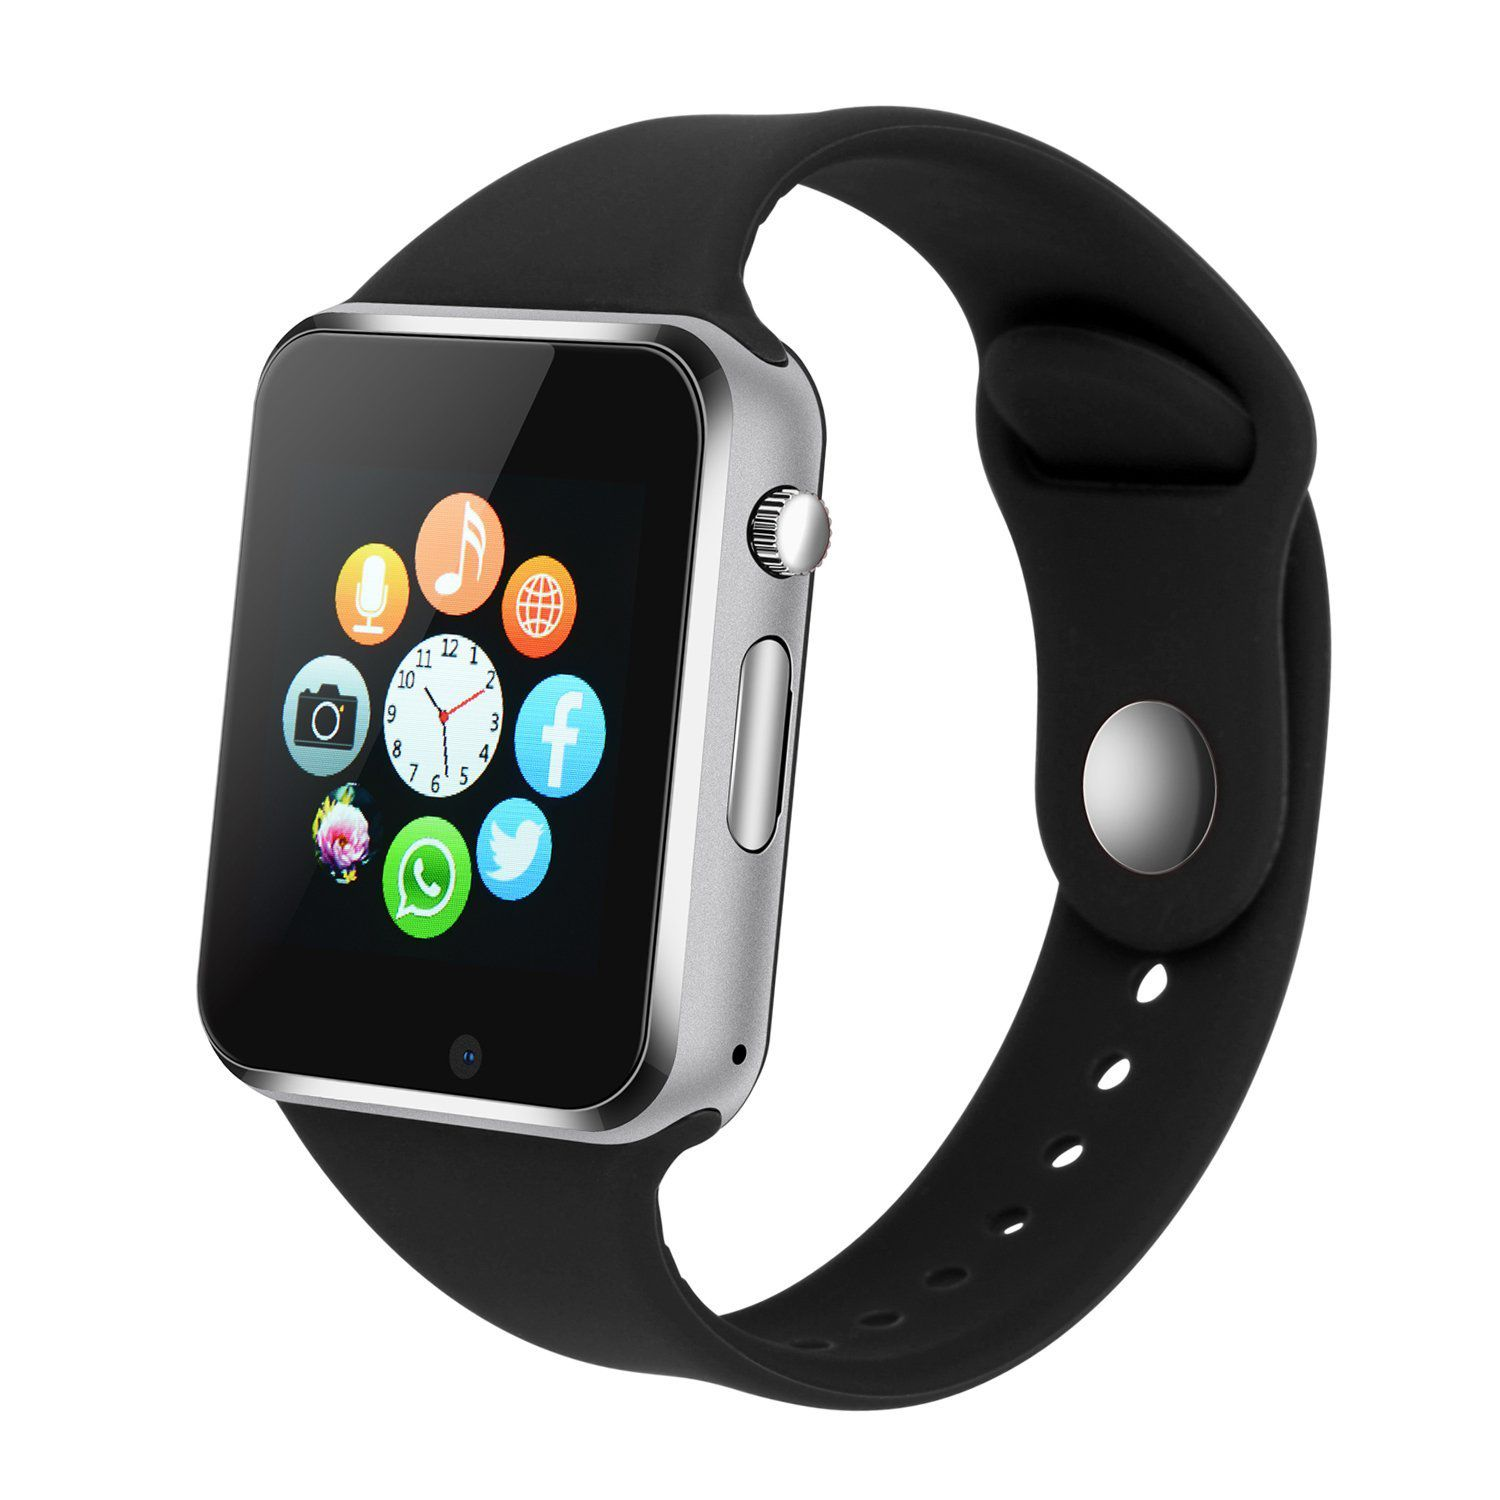 huge discount a5183 79047 AVIKA Apple iPhone 6s 128GB Compatible Smart Watches